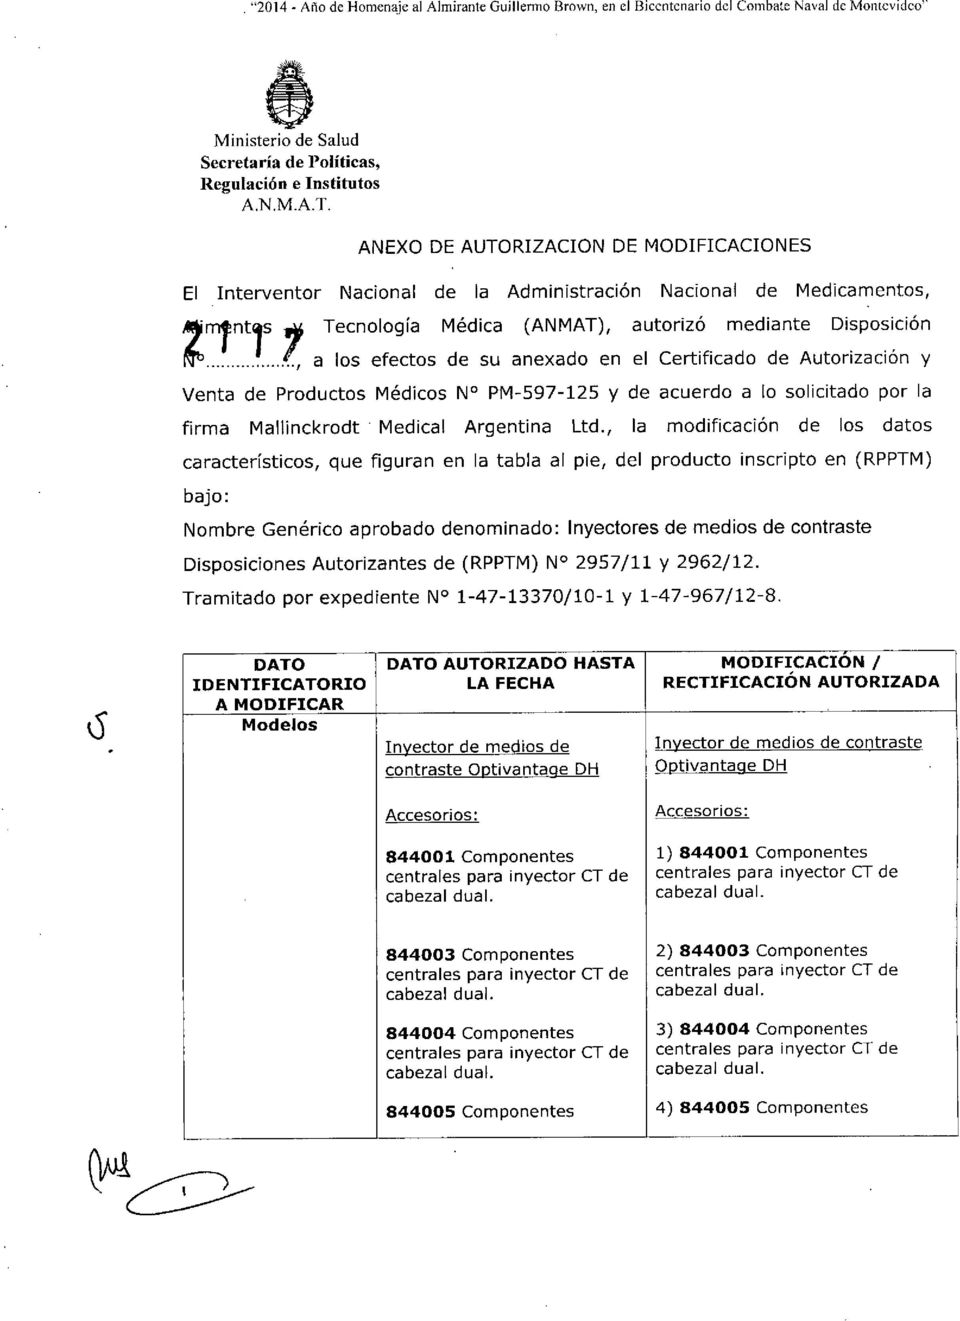 solicitado por la firma Mallinckrodt. Medical Argentina Ltd.